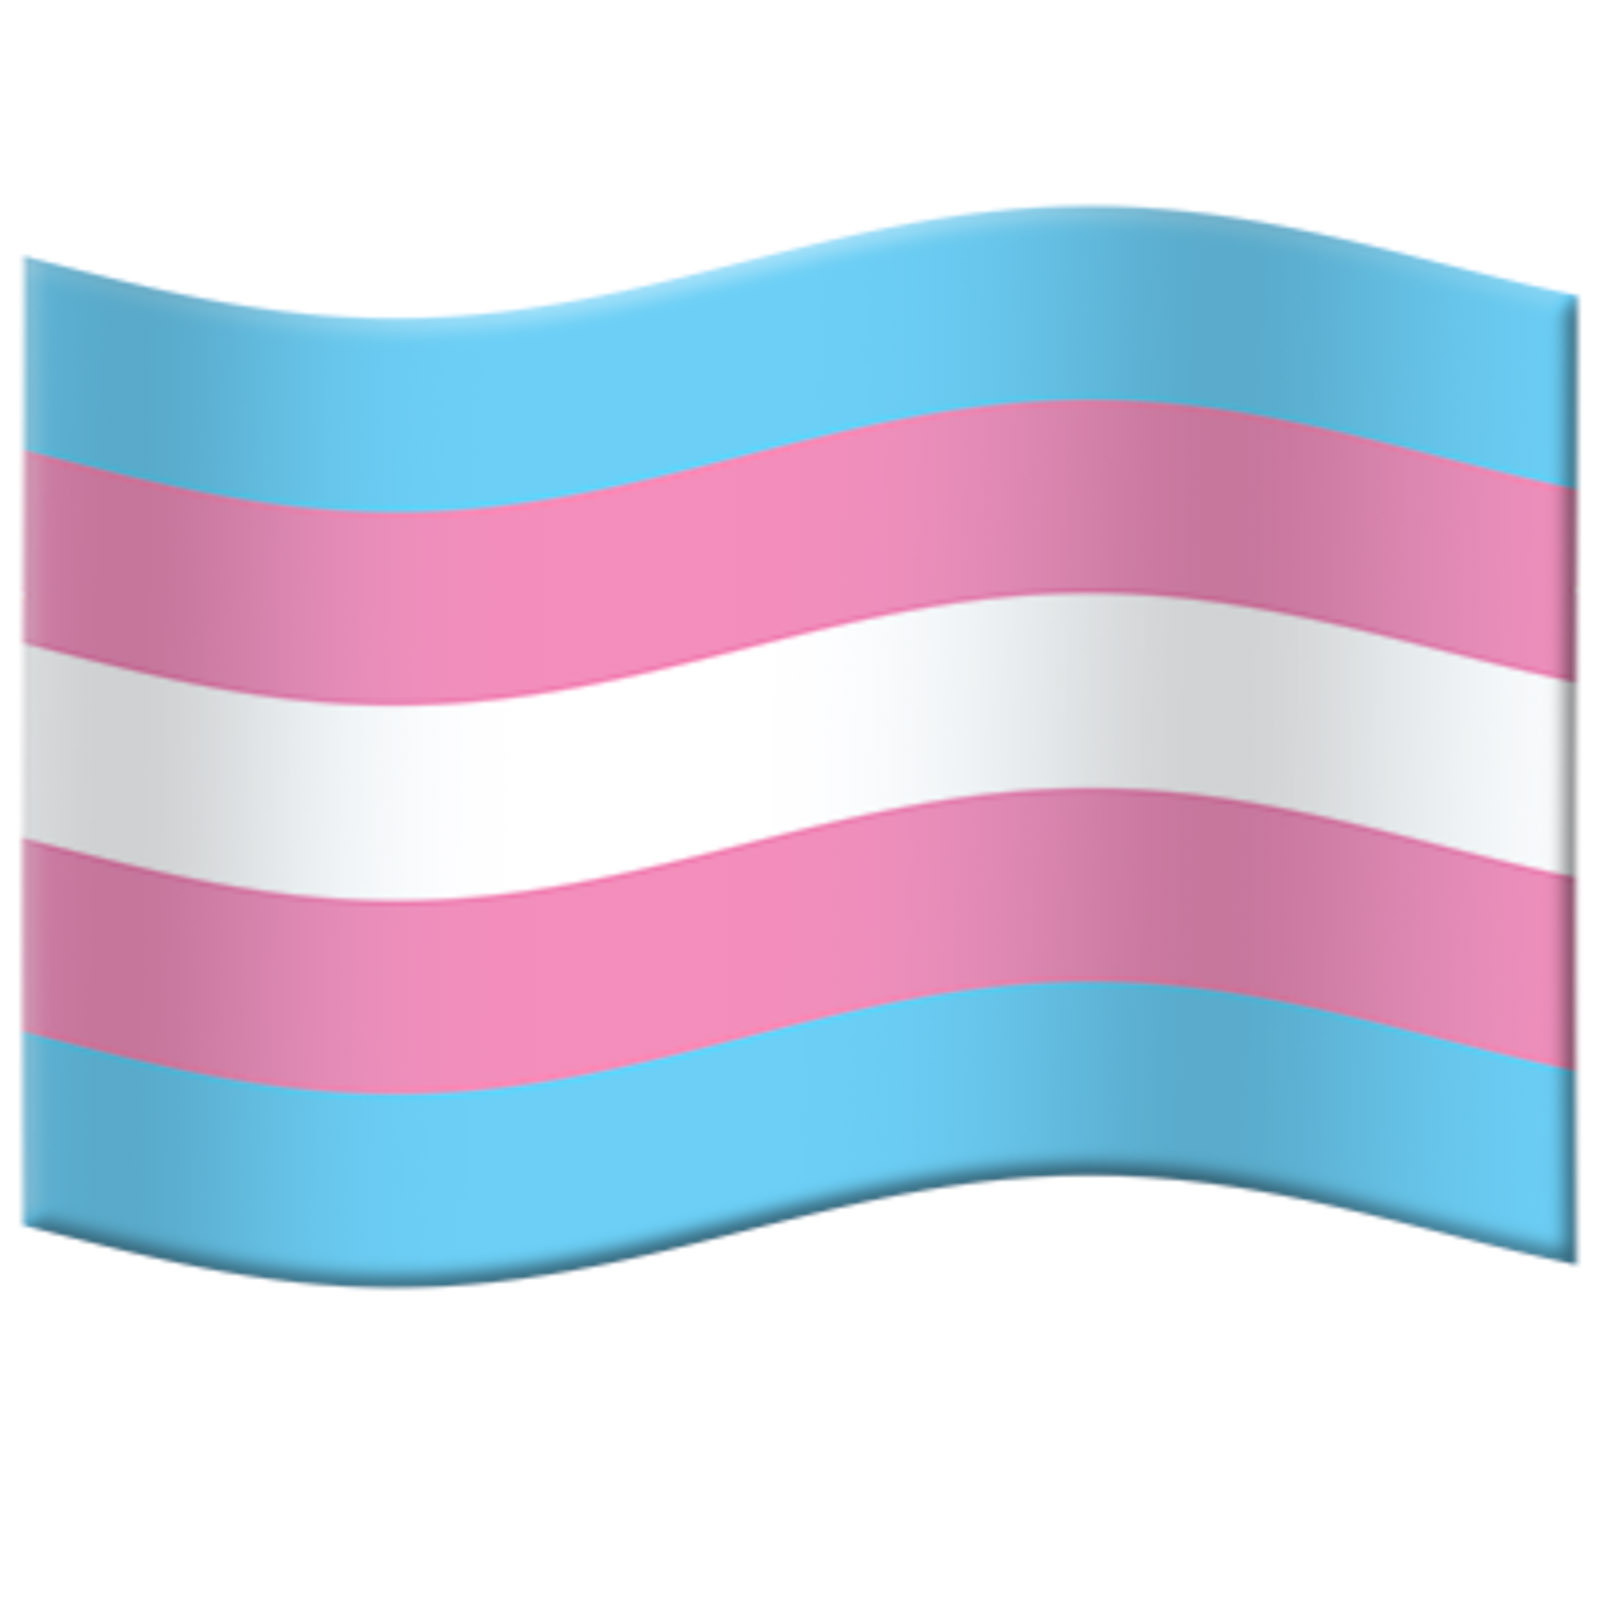 Proposed Transgender Pride Flag Symbol